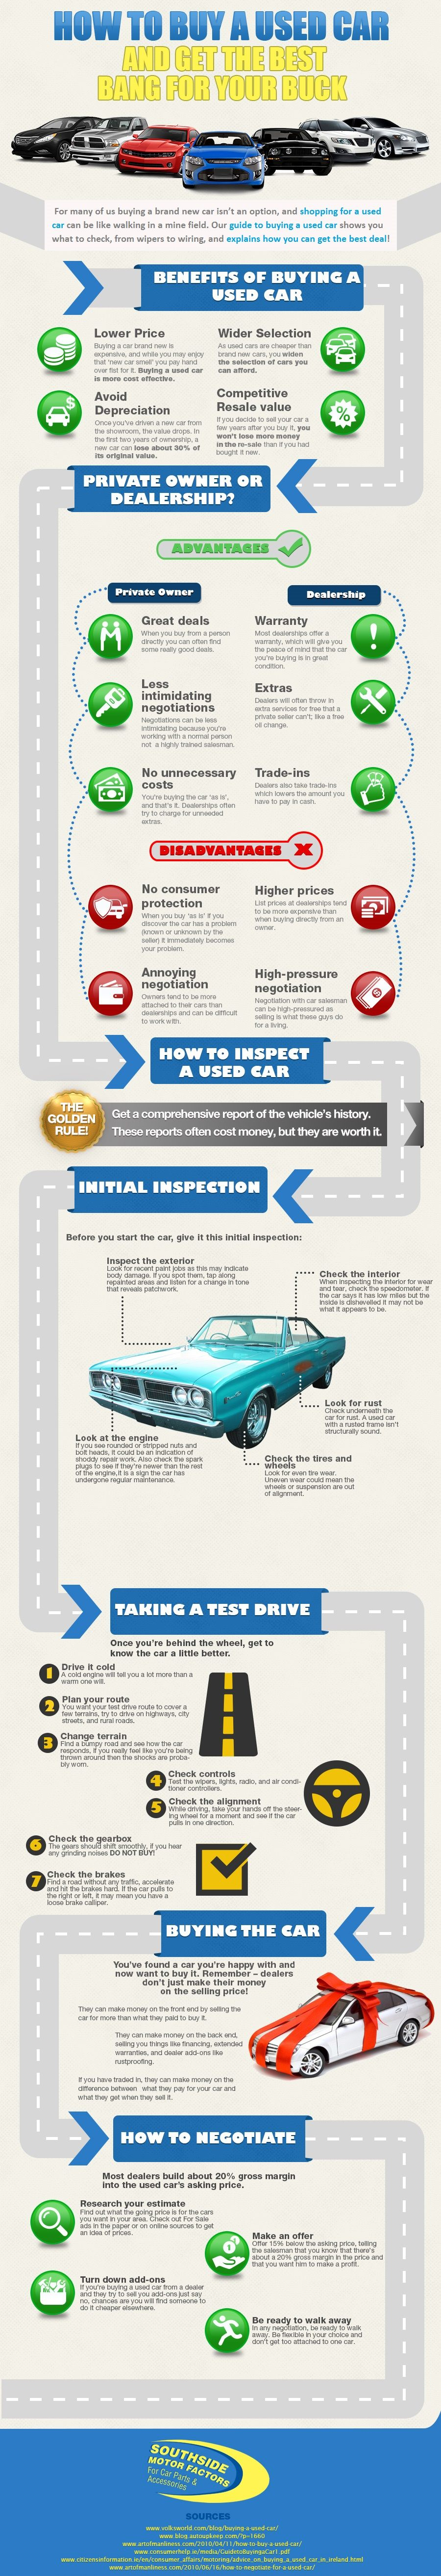 how to buy a used car infographic